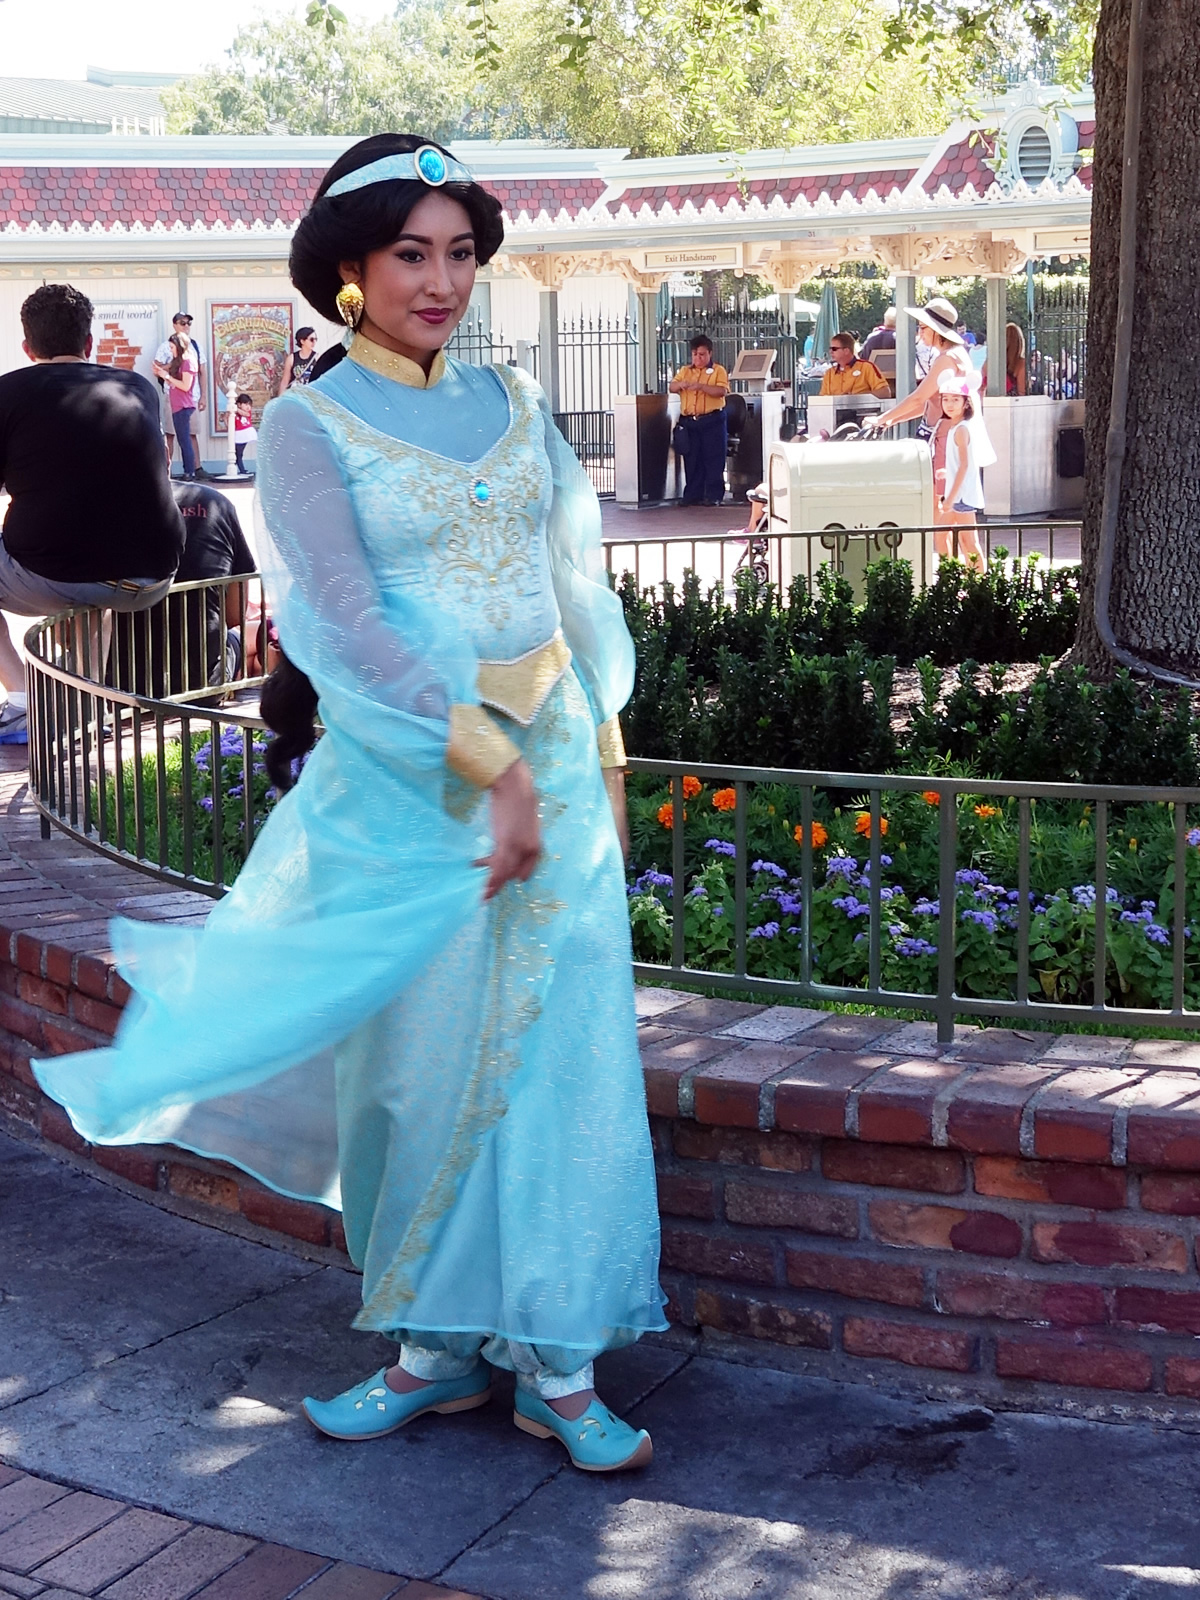 Mouseplanet disneyland resort update for september 19 25 2016 by princess jasmine is wearing a new outfit to meet guests at disneyland photo by adrienne vincent phoenix m4hsunfo